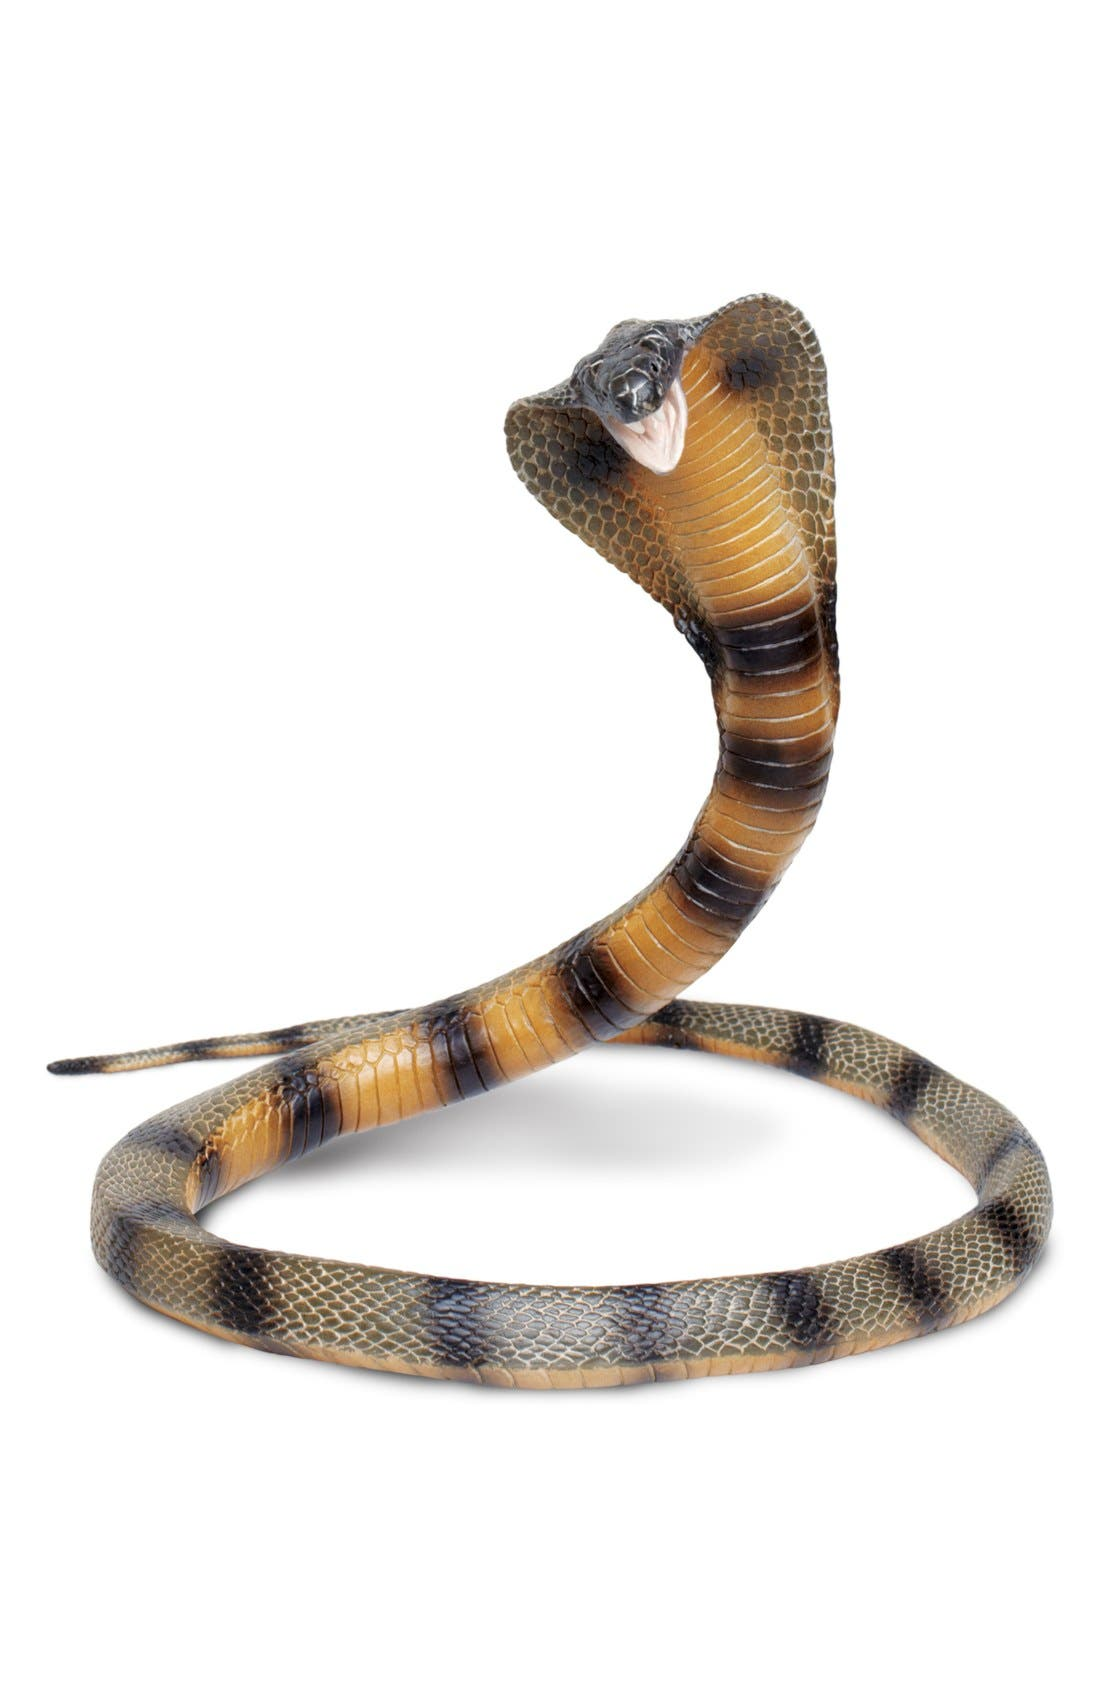 Cobra Snake Figurine,                             Main thumbnail 1, color,                             999